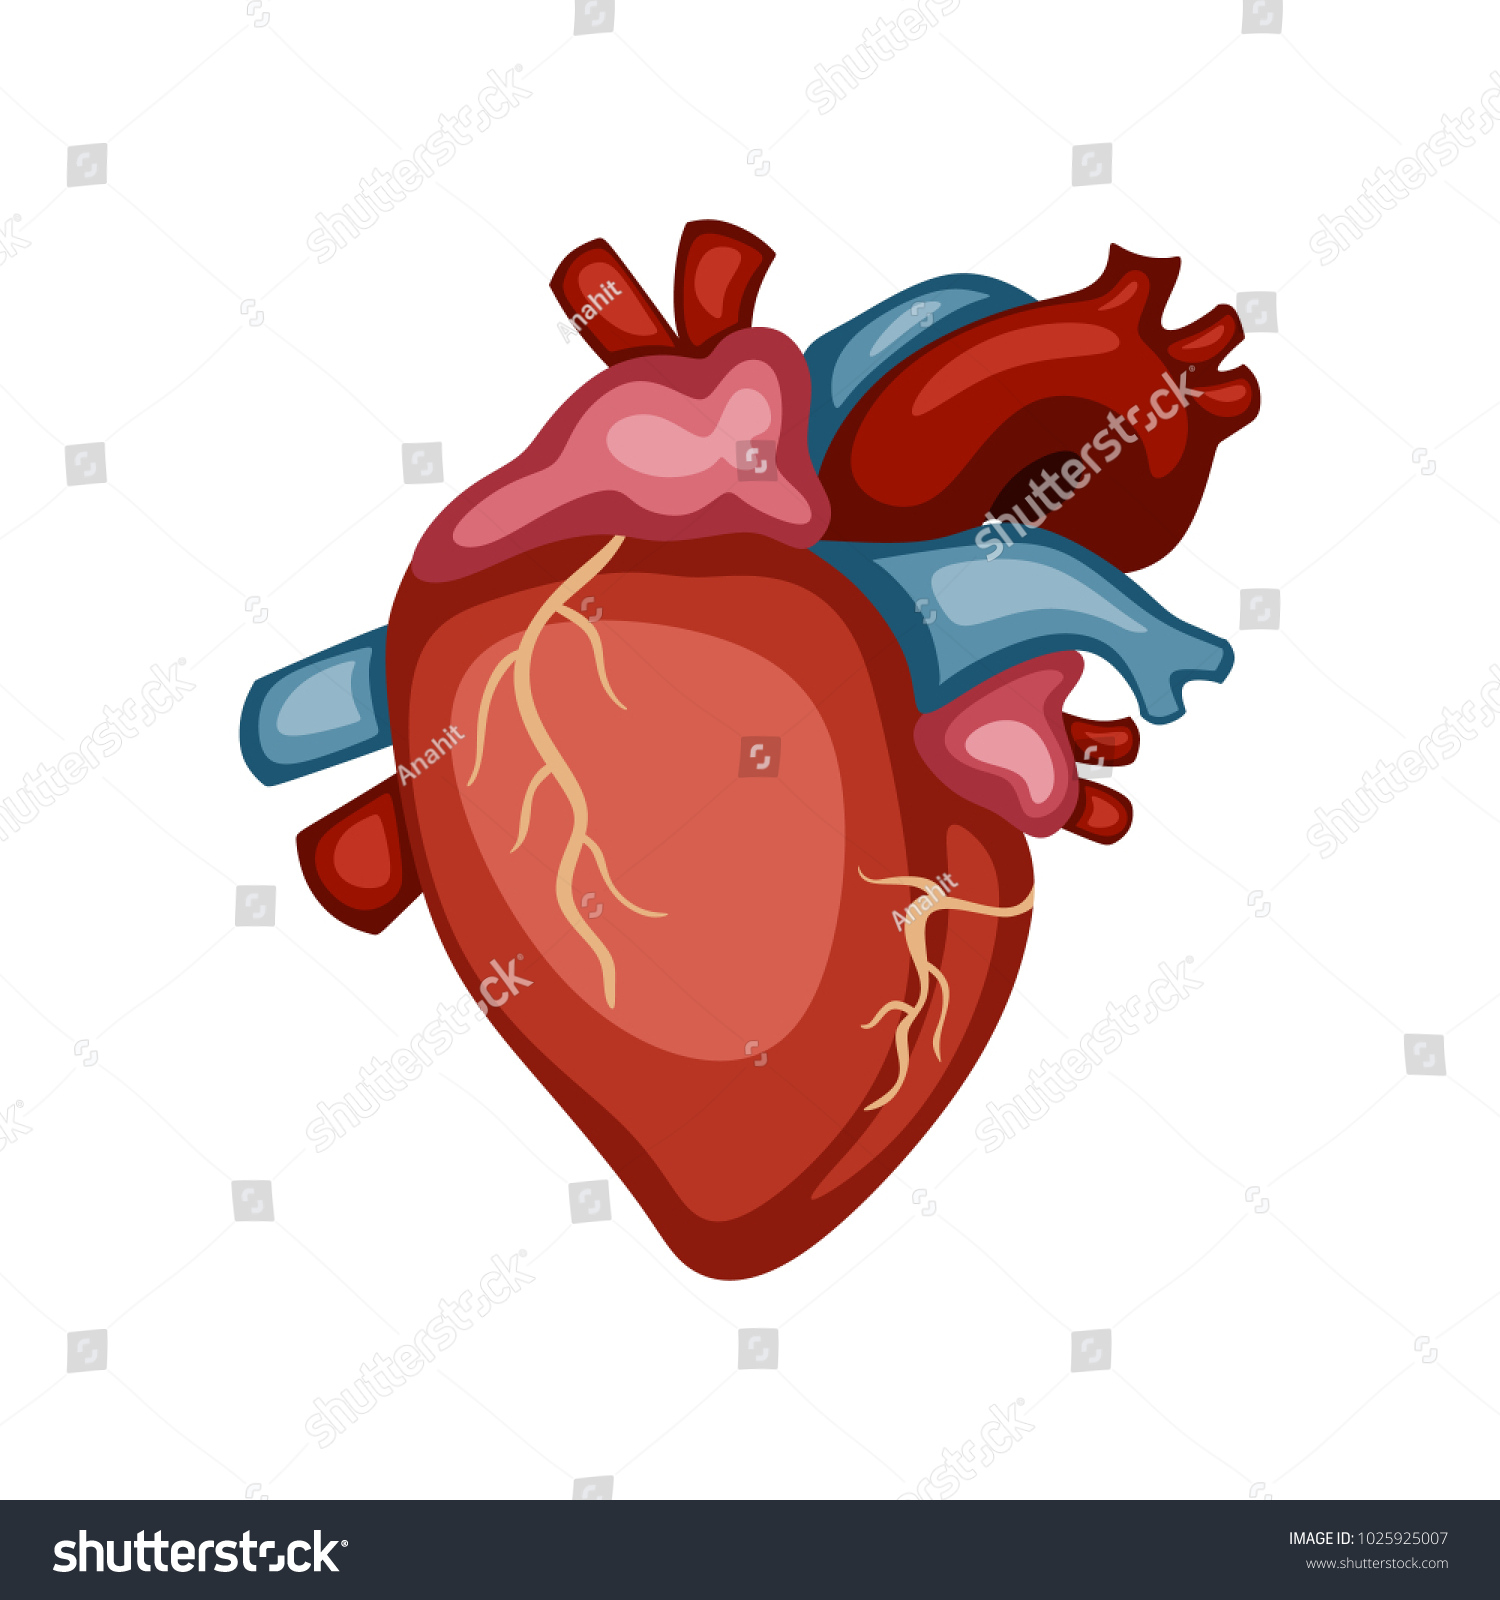 Human Anatomy Heart 3d Realistic Illustration Of Crayons With